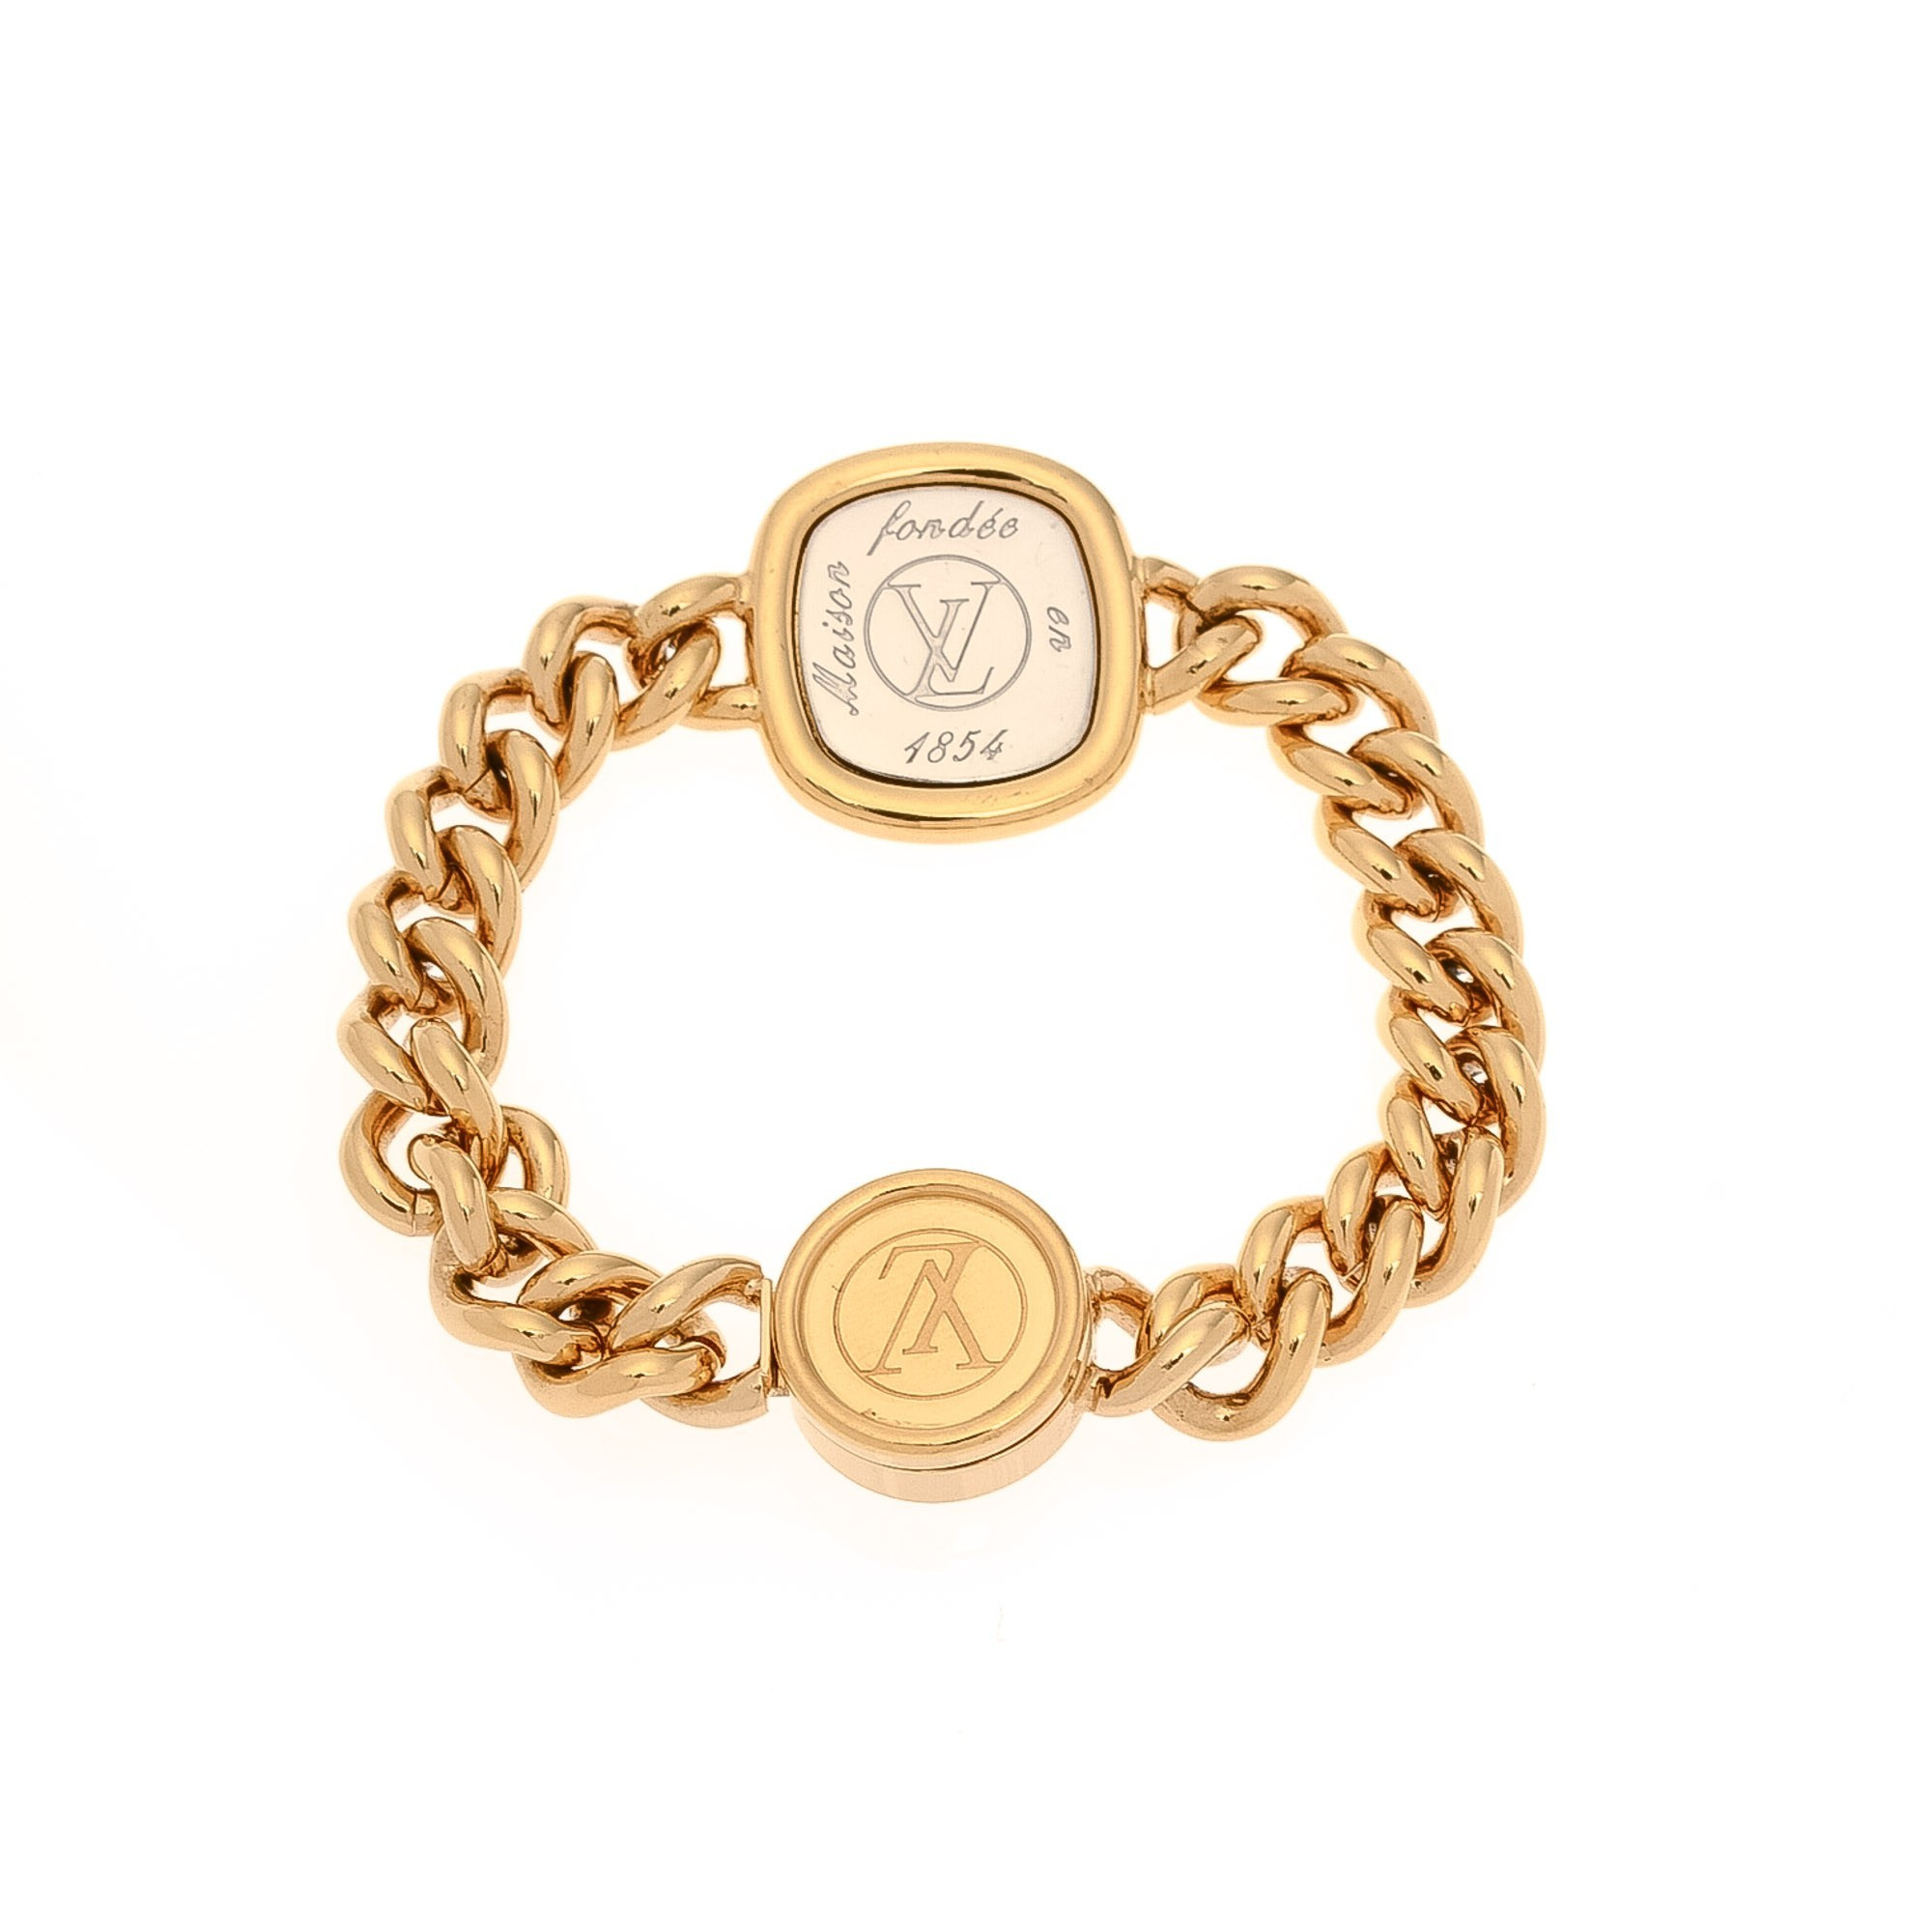 buy gold palladium plated on brass louis vuitton bracelet